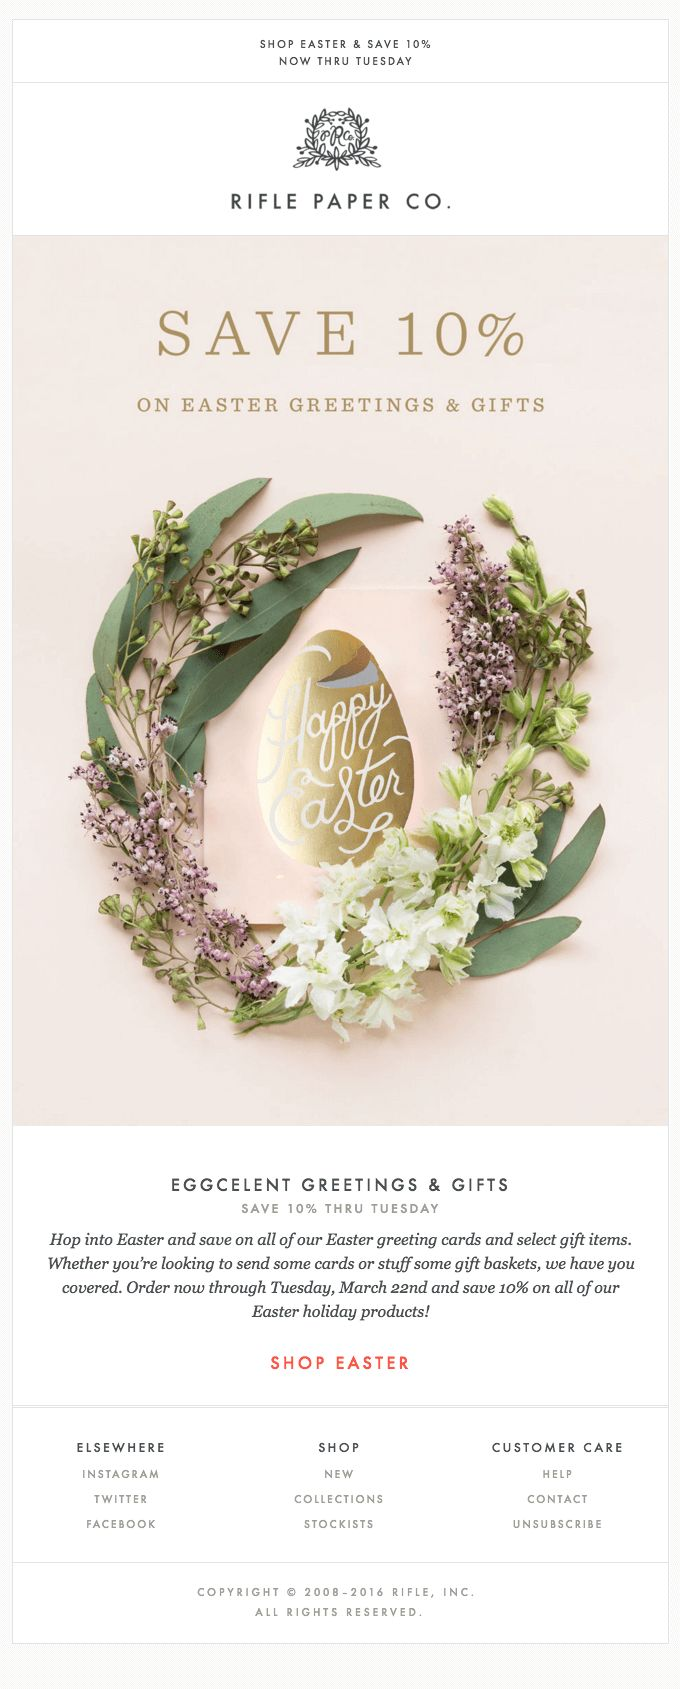 Eggcelent Greetings & Gifts for Easter - Really Good Emails